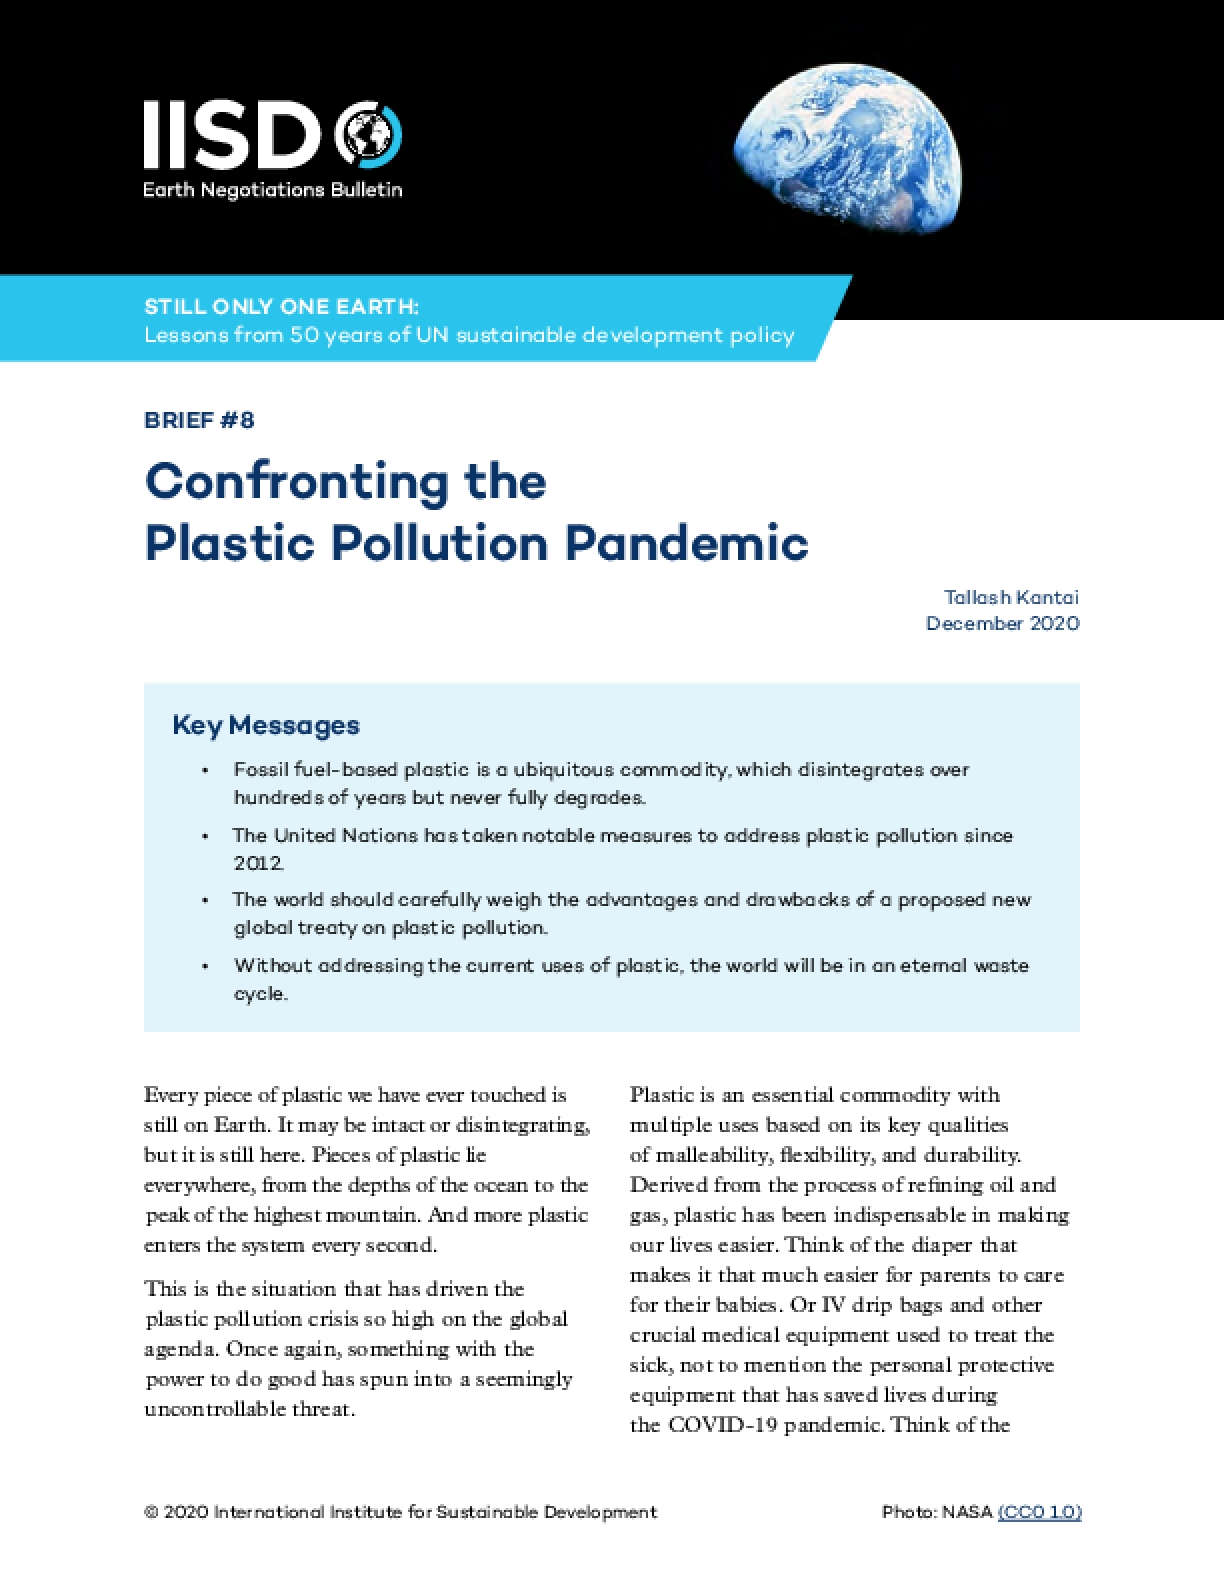 Confronting the Plastic Pollution Pandemic